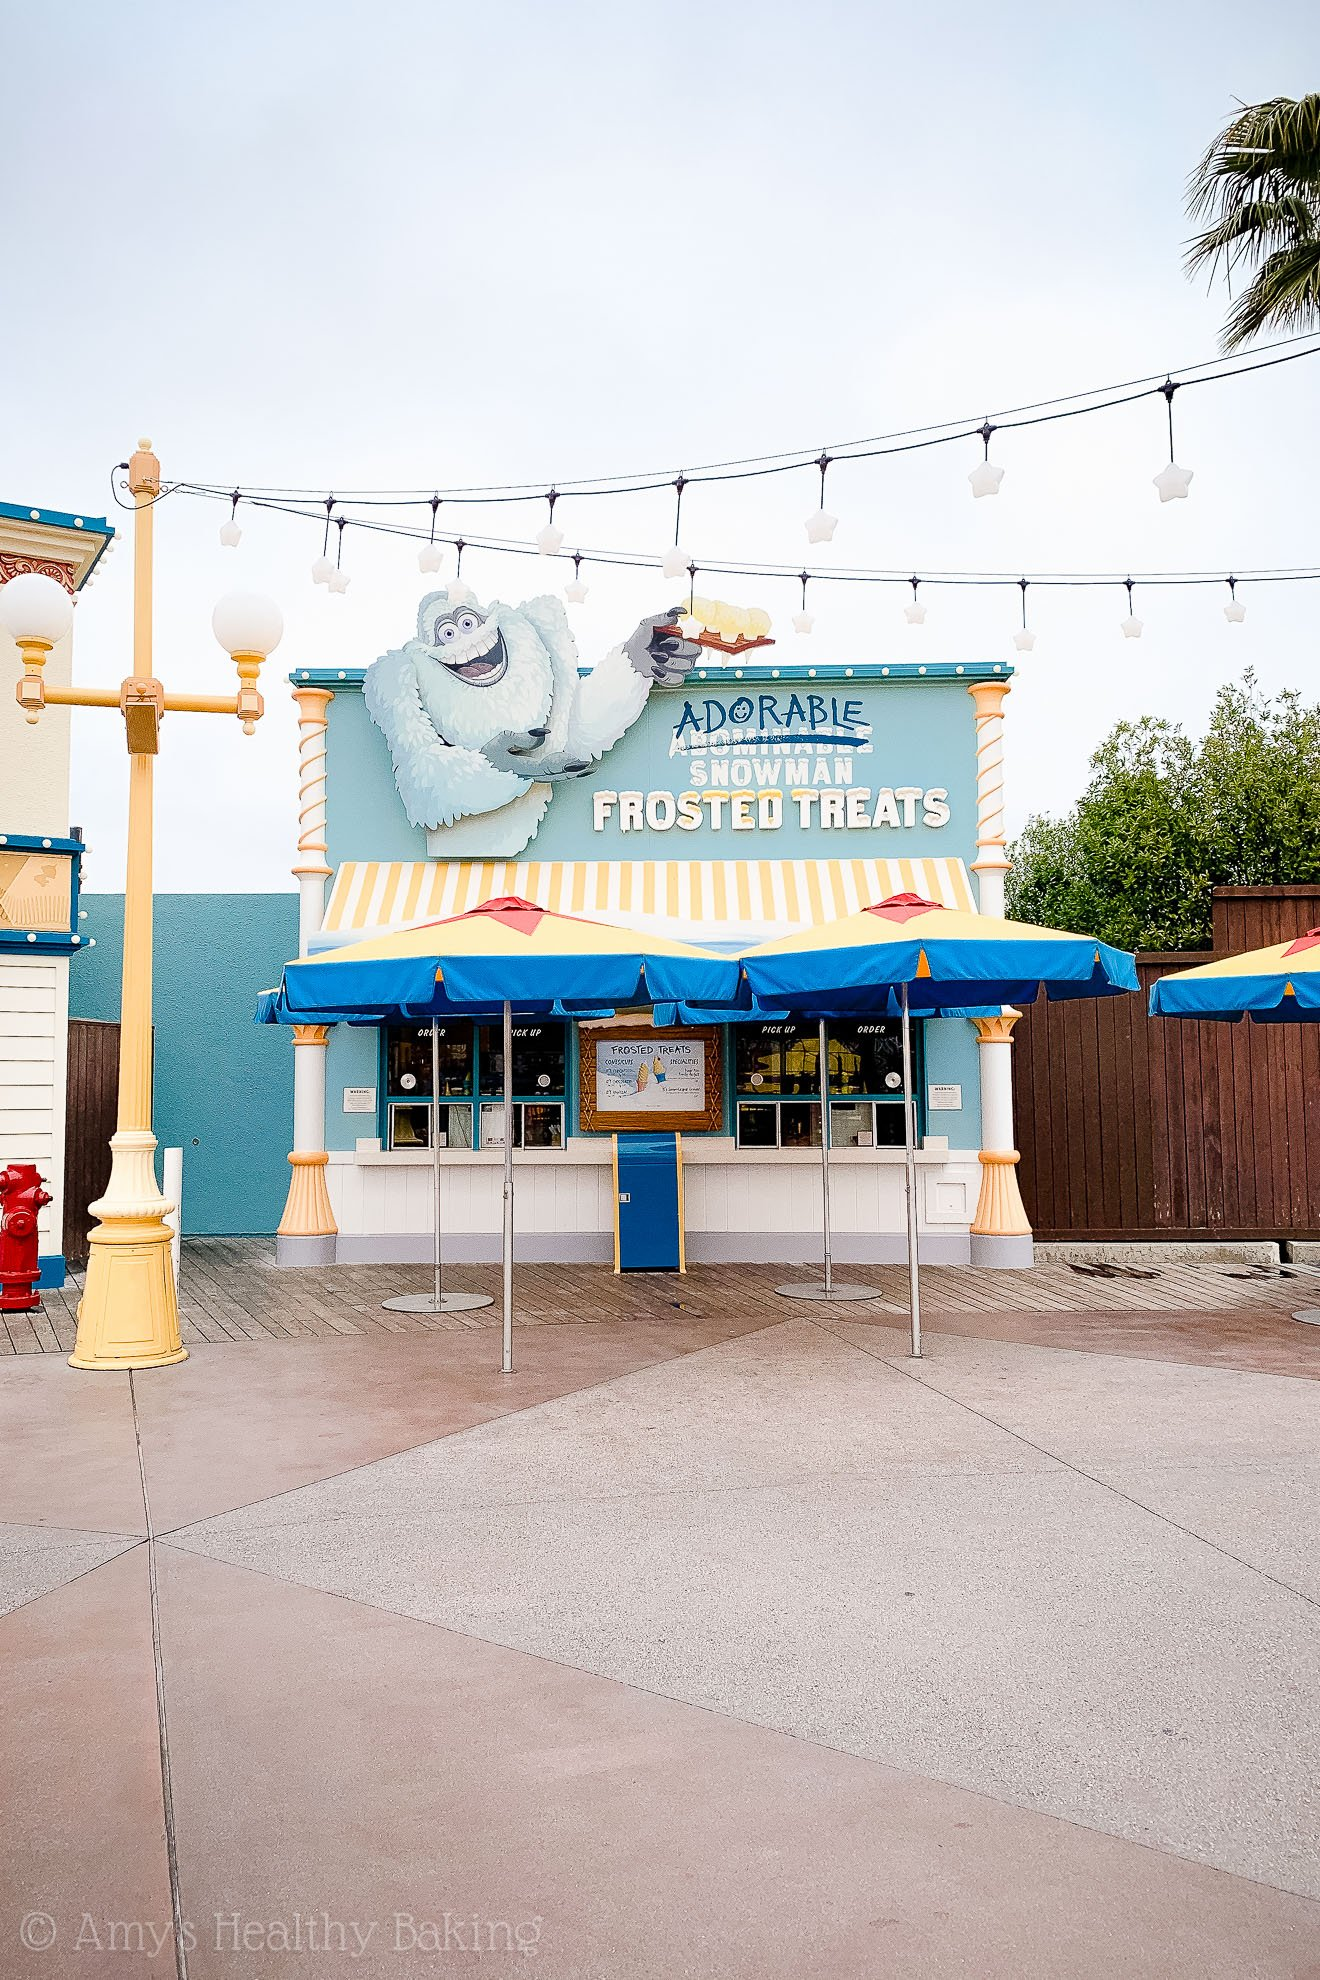 Abominable snowman frosted treats stand in California Adventure